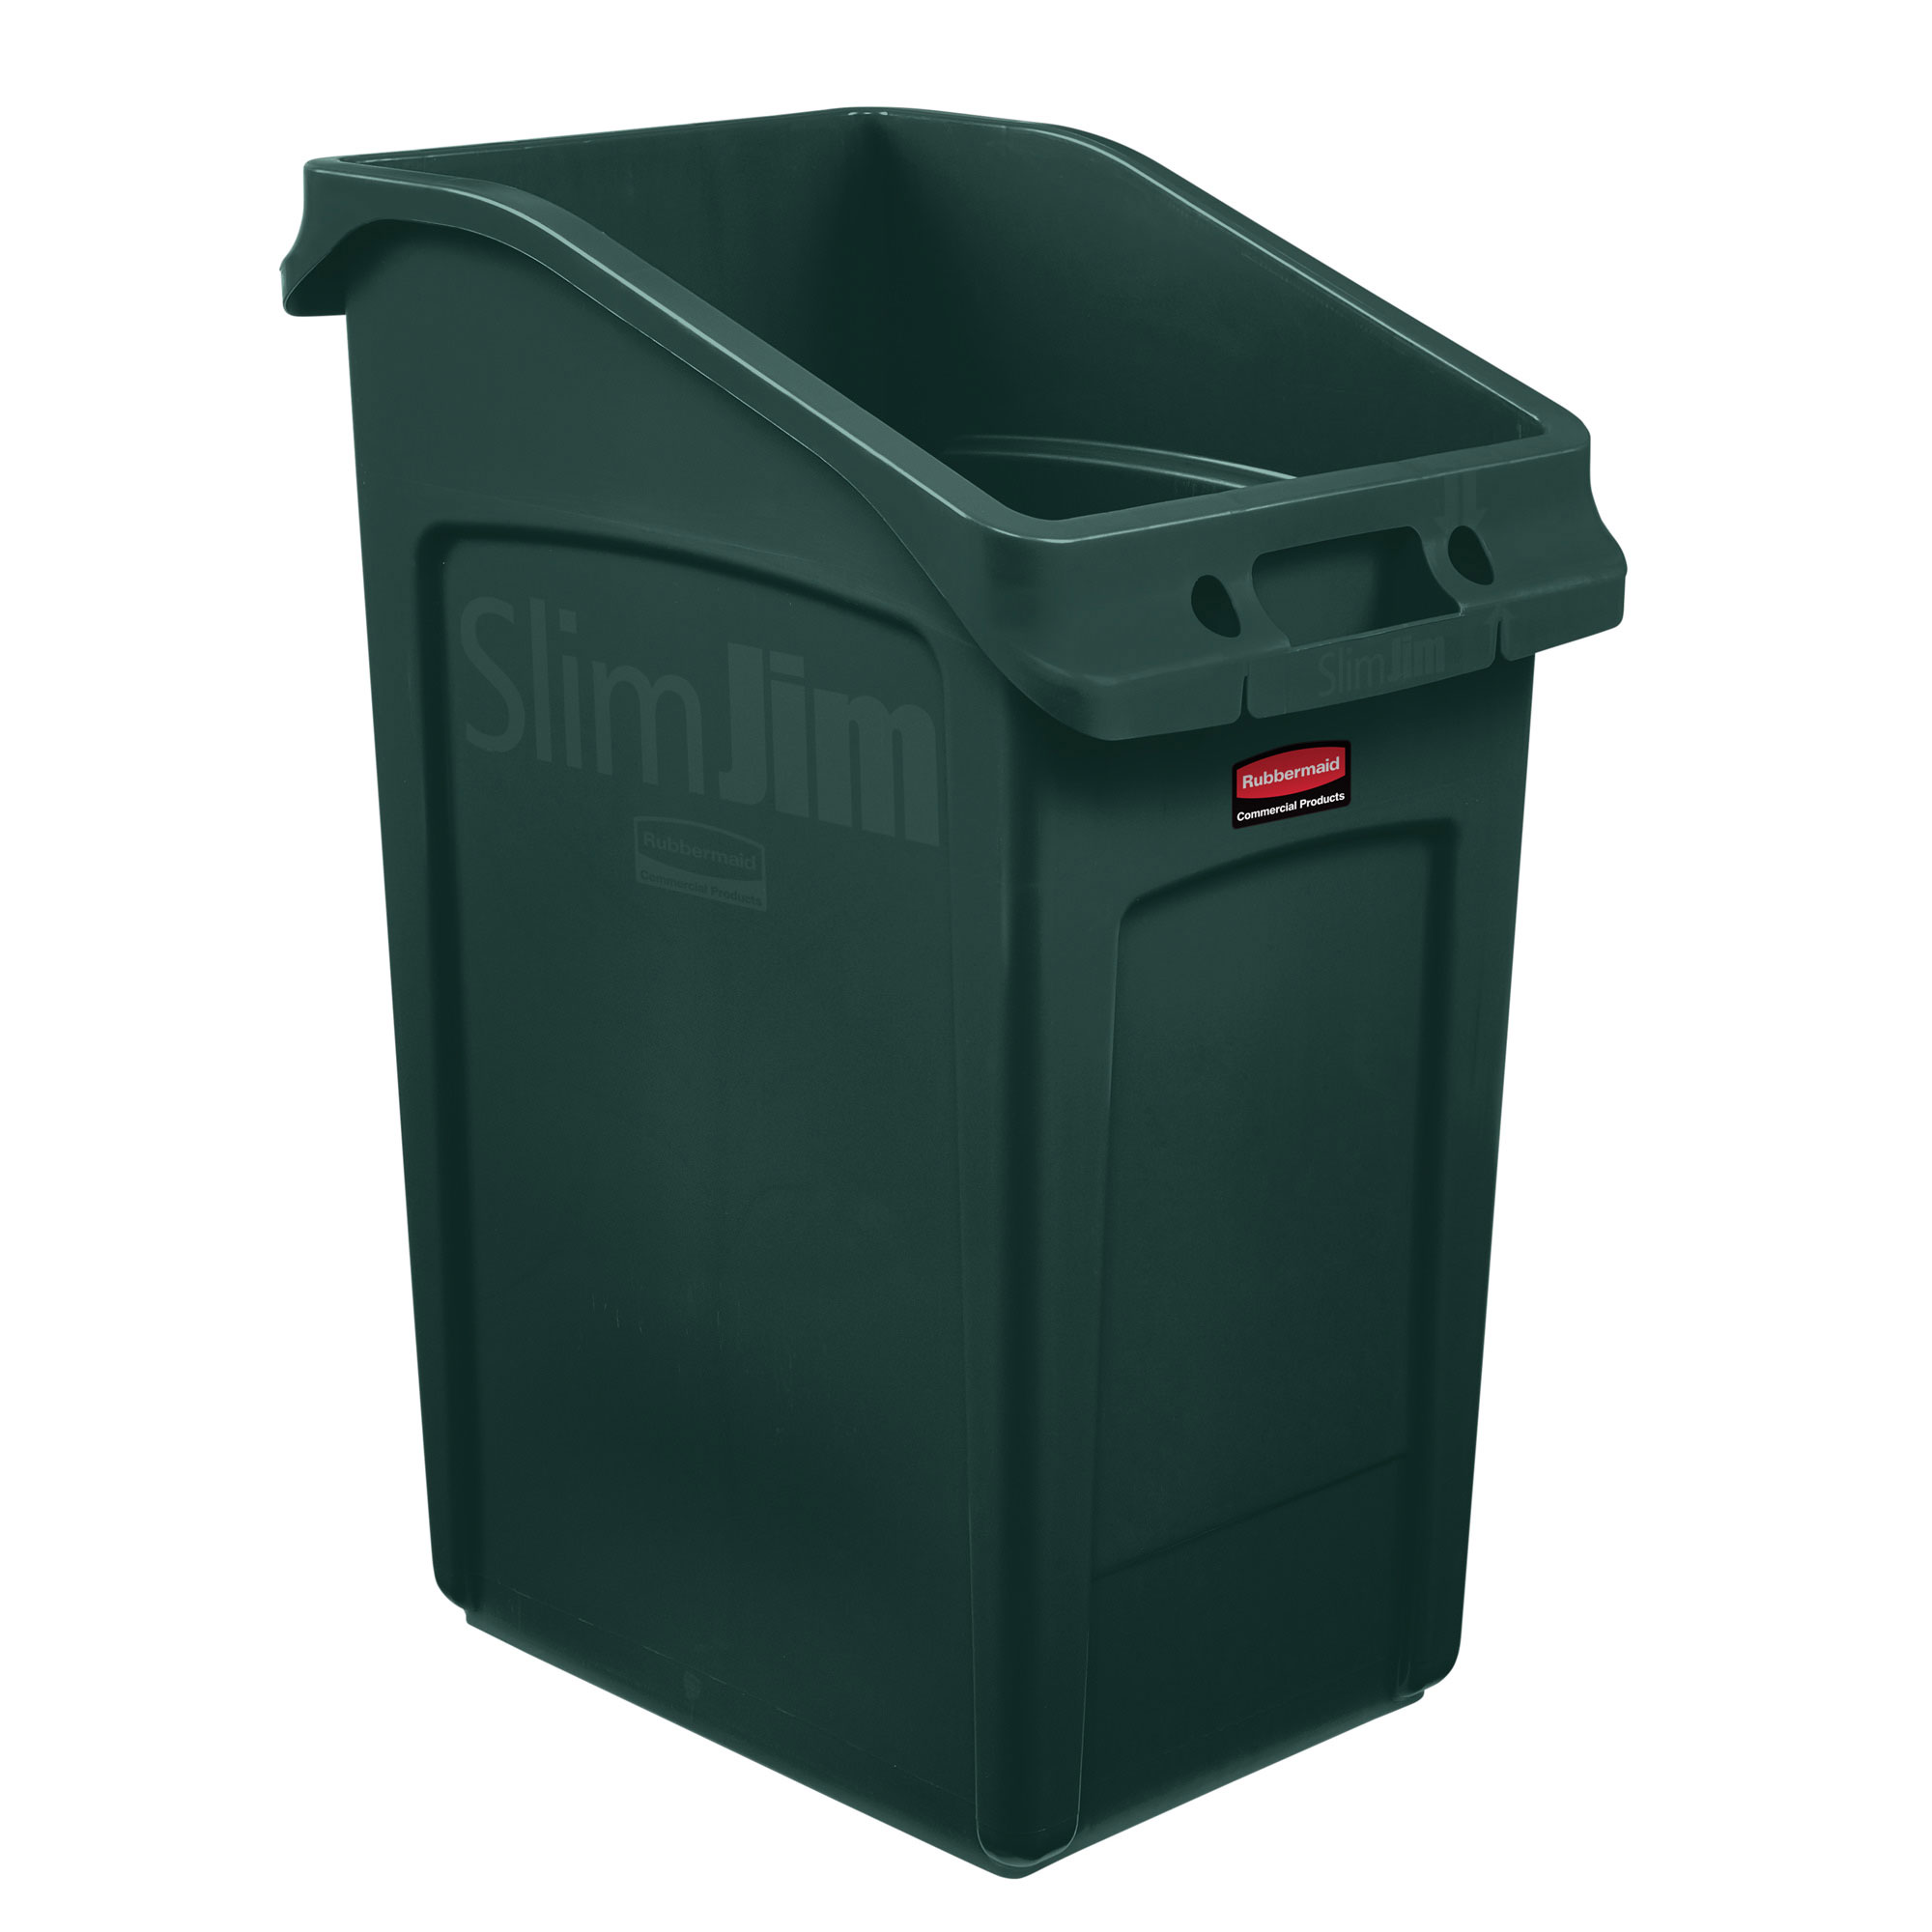 Rubbermaid Commercial Products 2026726 trash receptacle, indoor